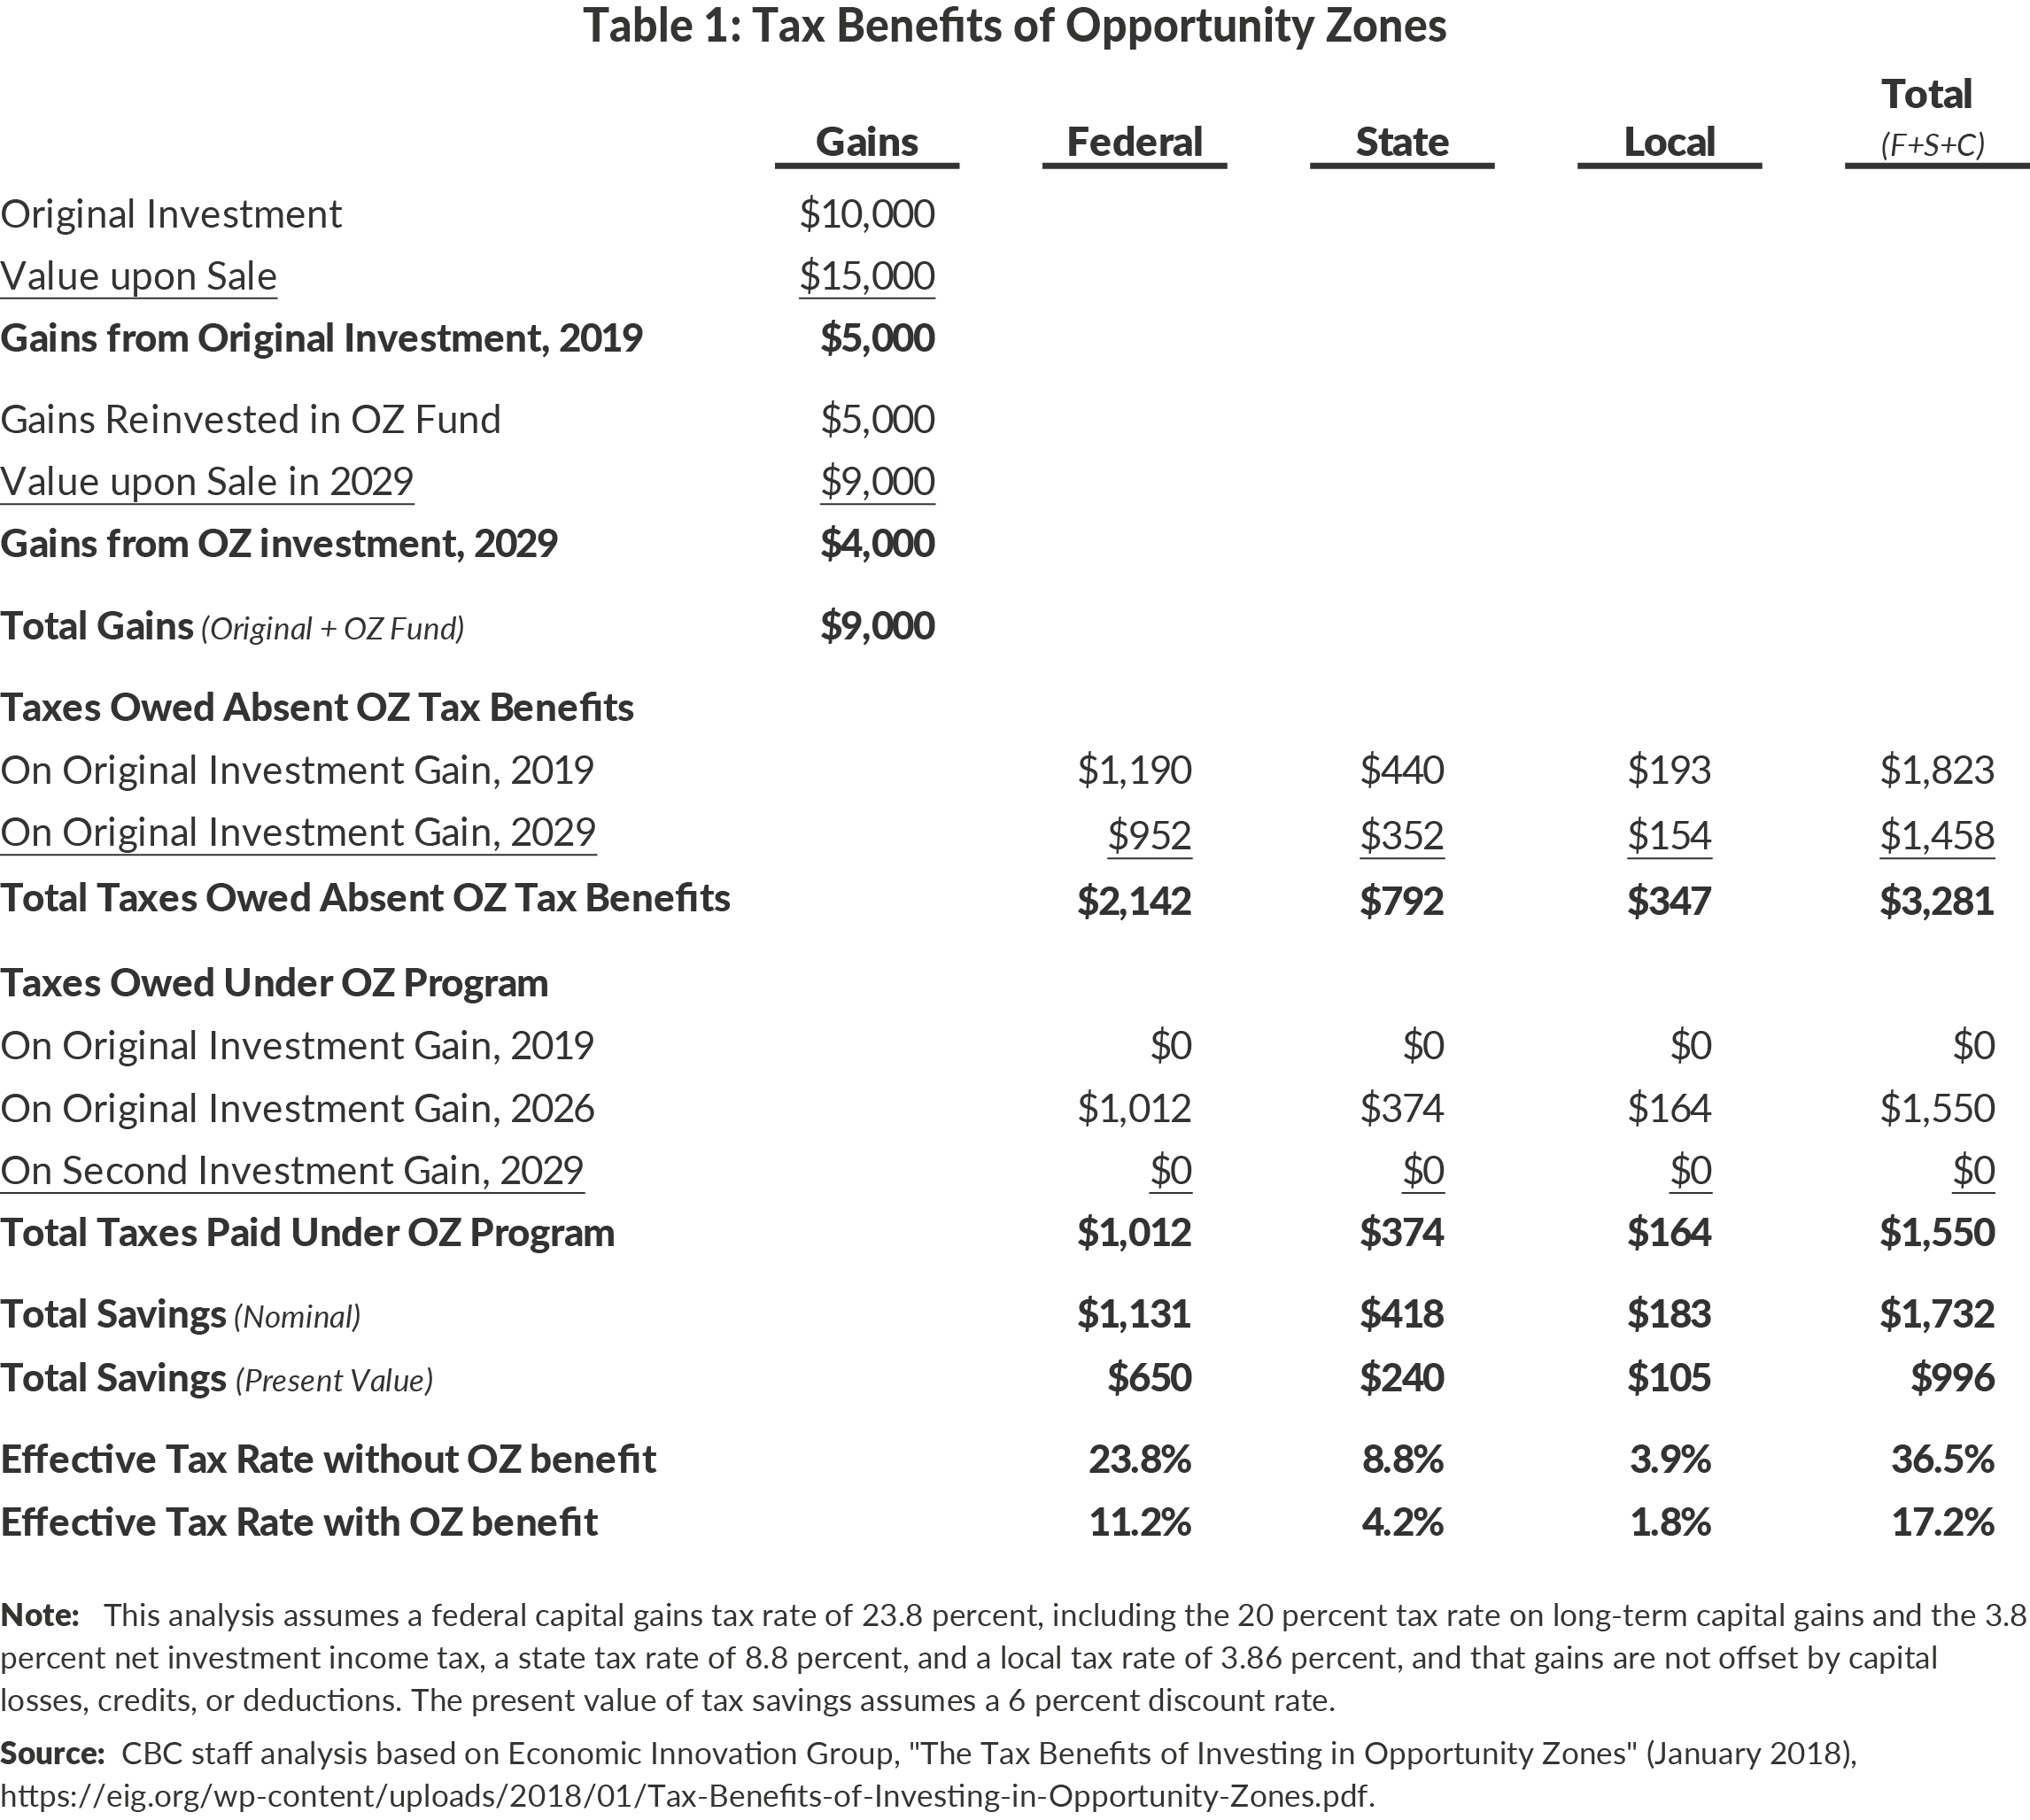 Table 1: Tax Benefits of Opportunity Zones